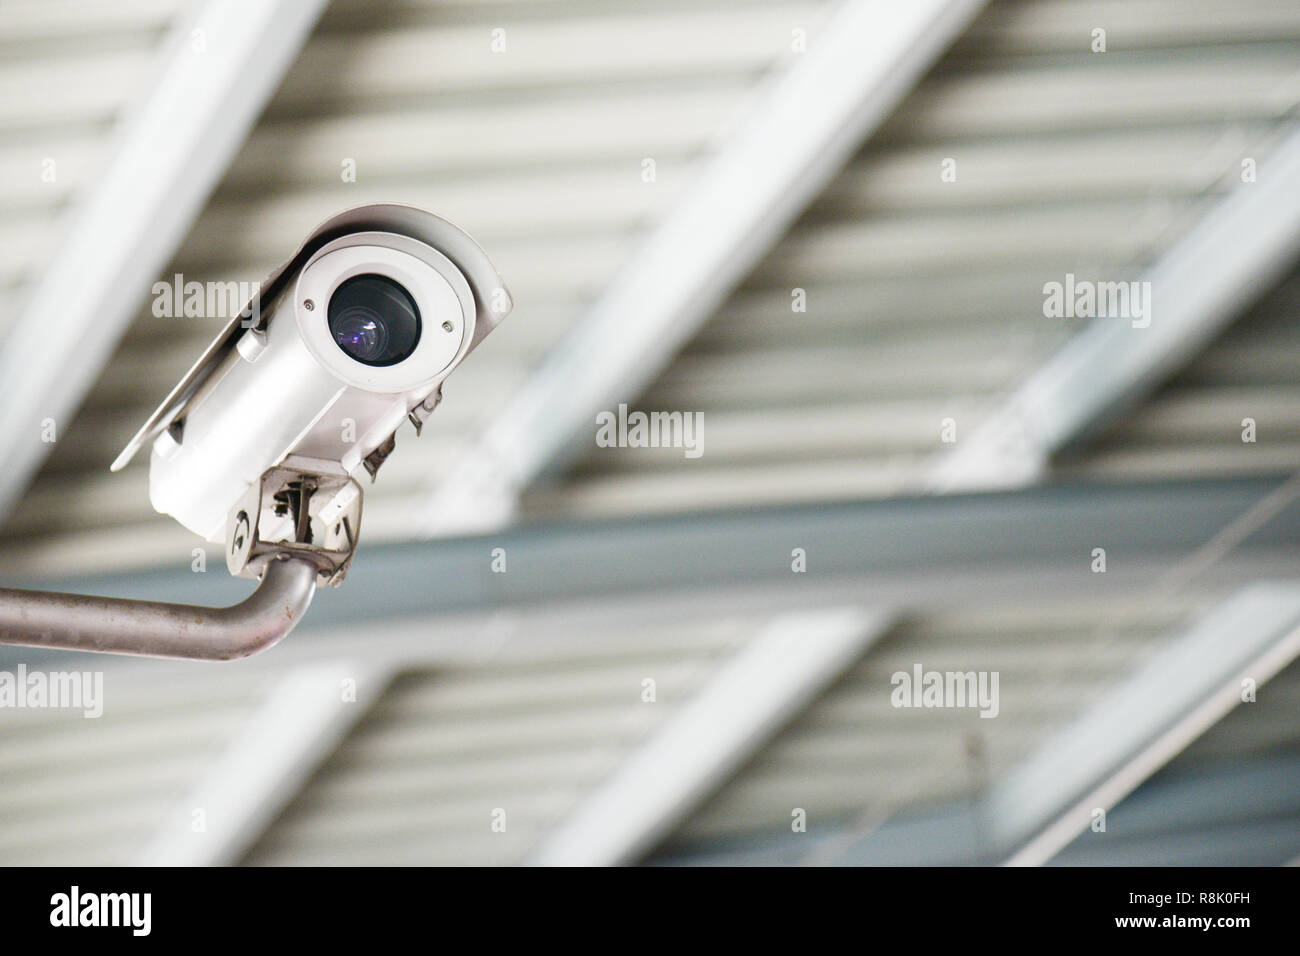 Security CCTV camera or surveillance system.CCTV camera, surveillance camera, video surveillance camera - Stock Image